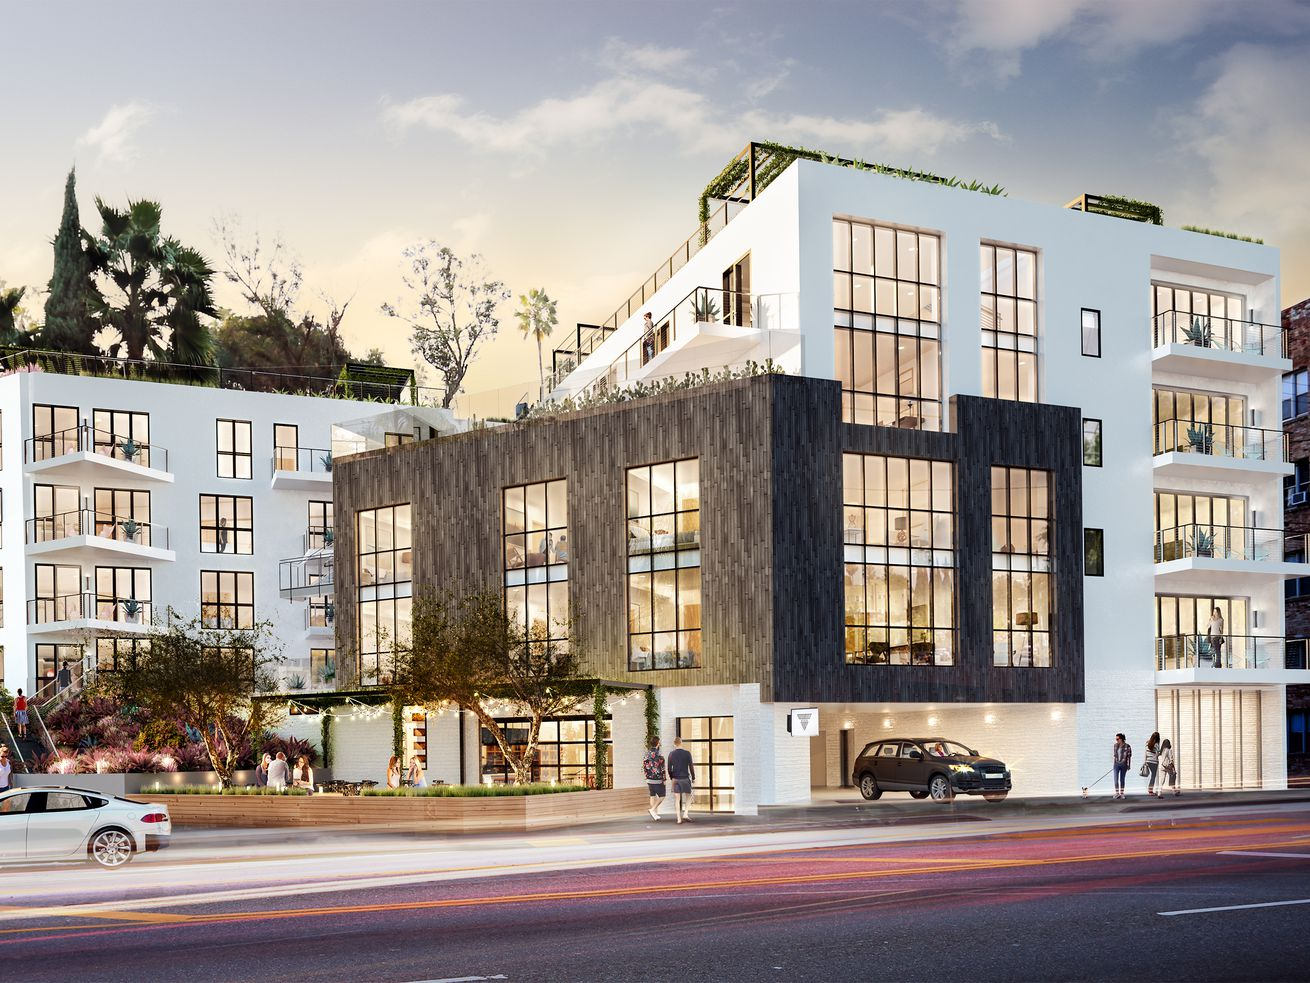 A rendering of the under-construction project at Sunset Boulevard and Micheltorena Street.